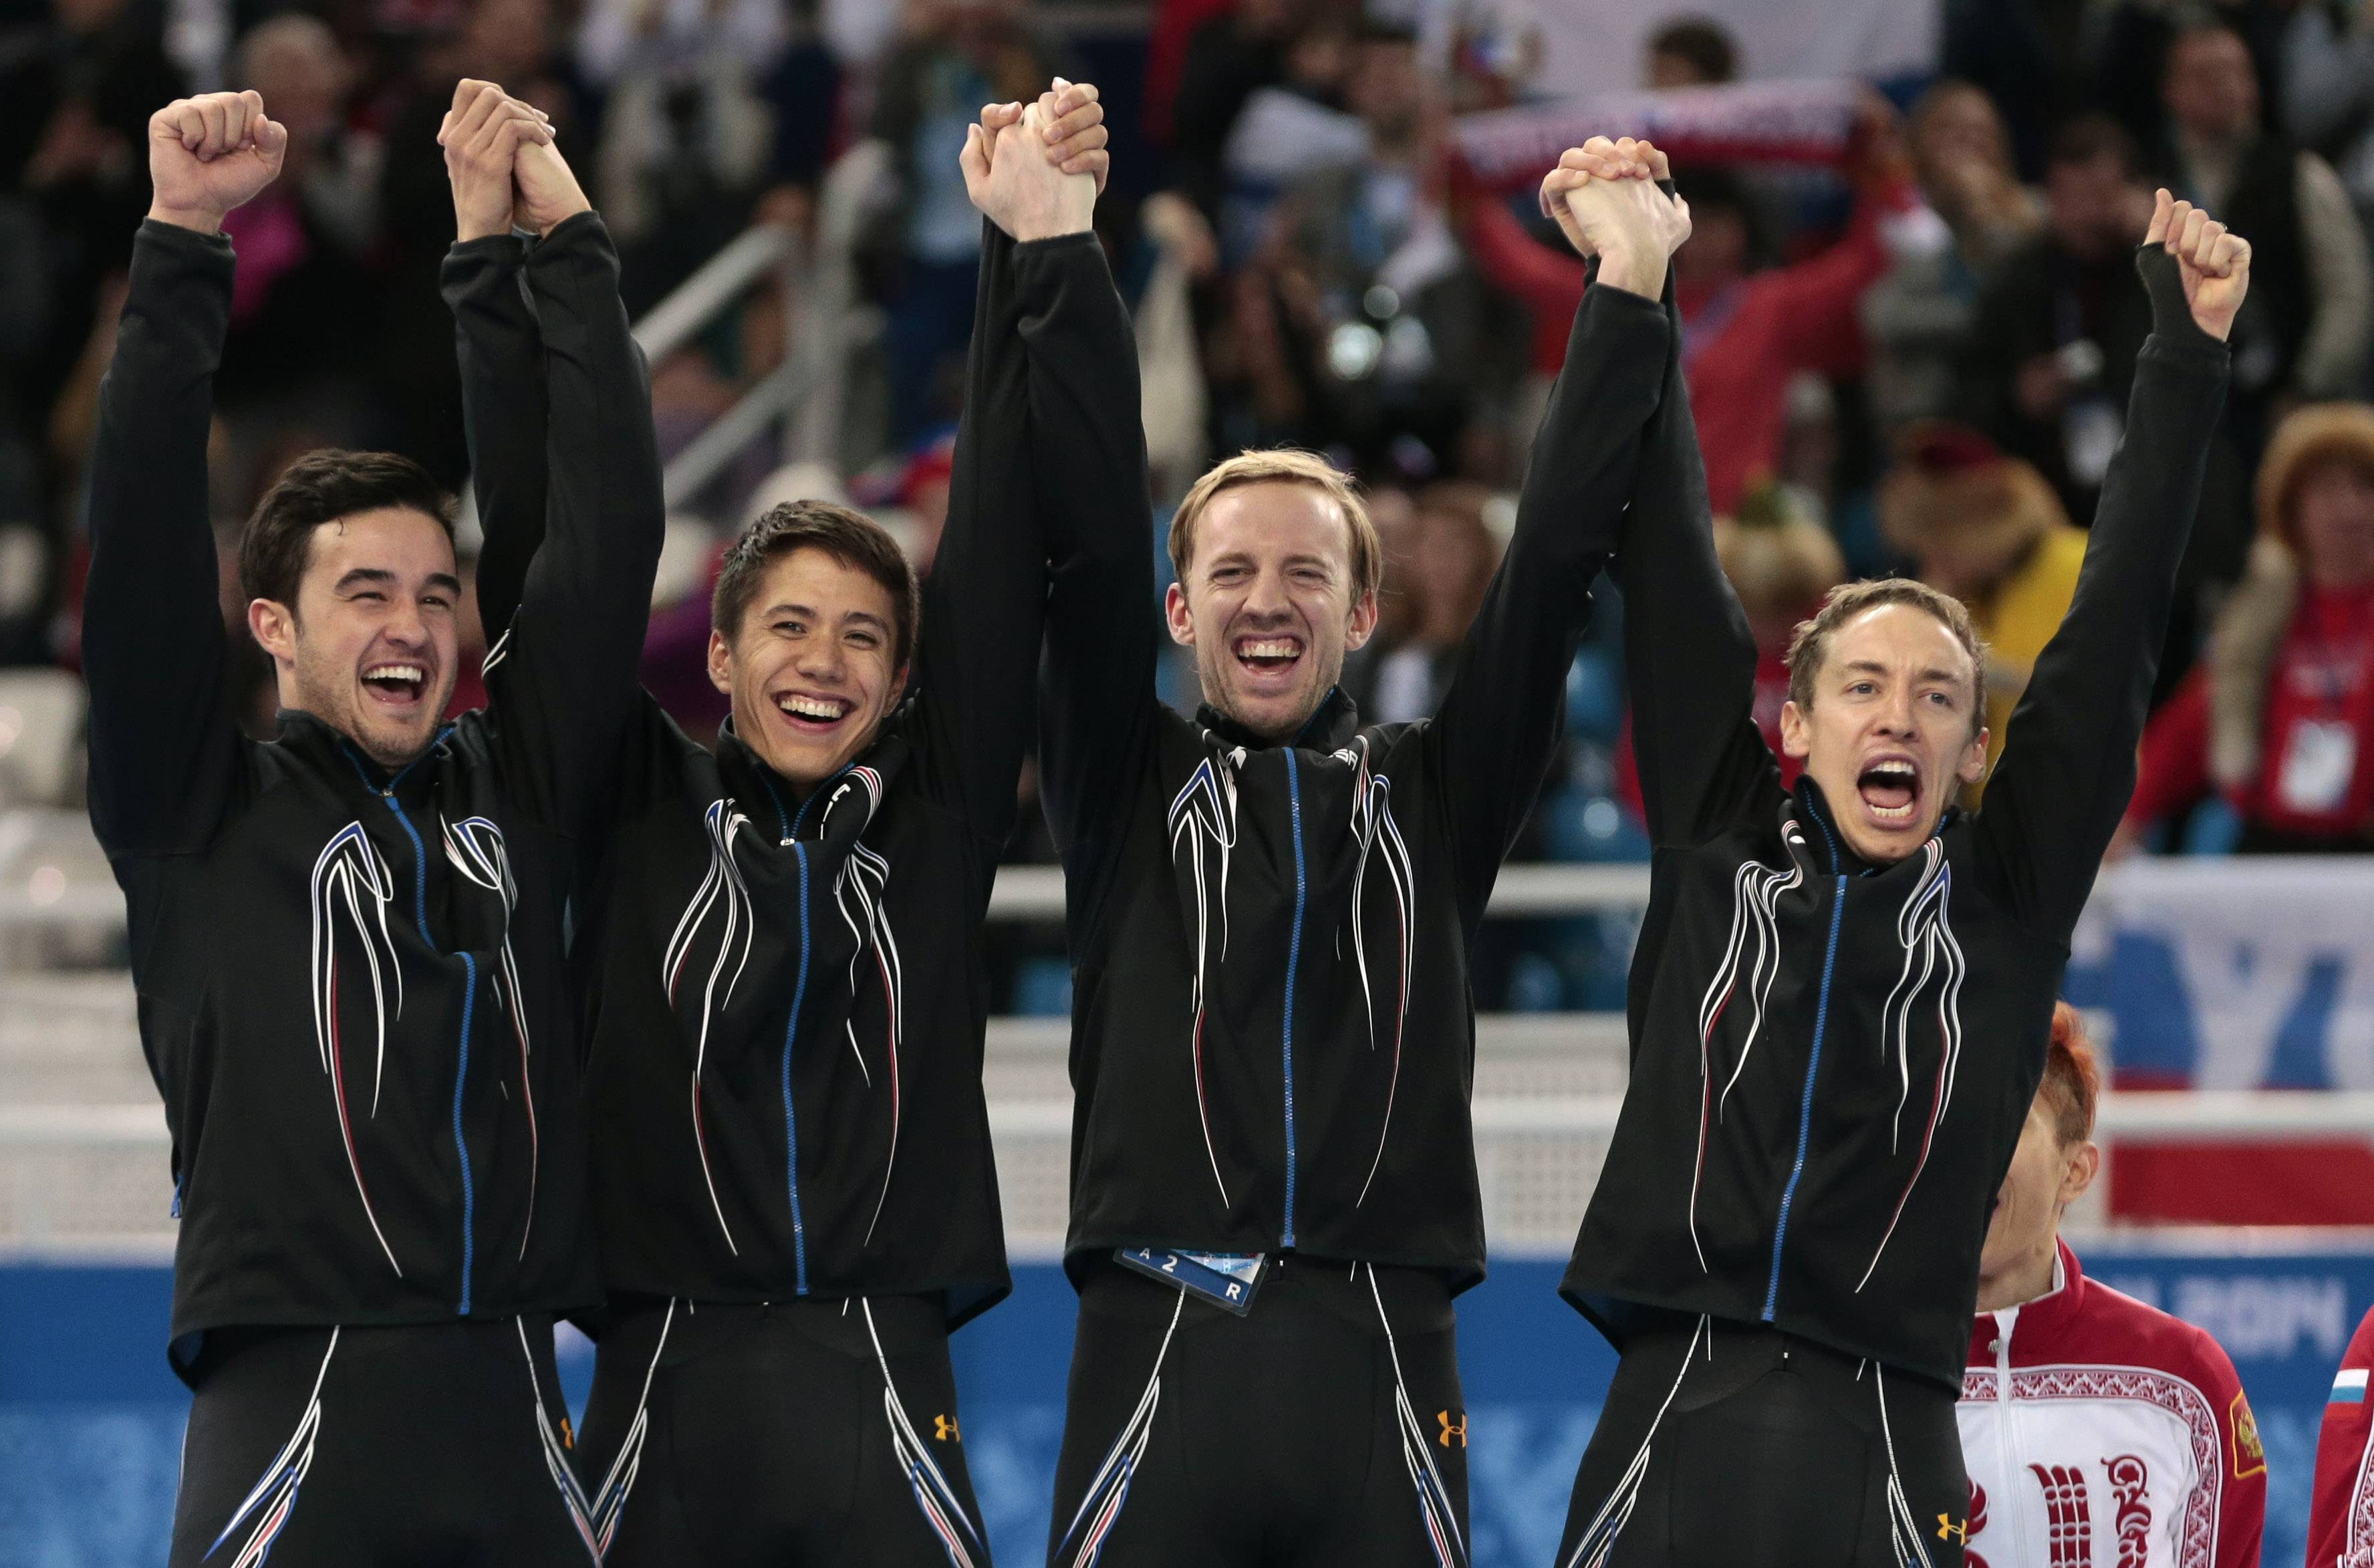 The U.S. team celebrate on the podium after they placed second for the men's 5000m short track speedskating relay final.